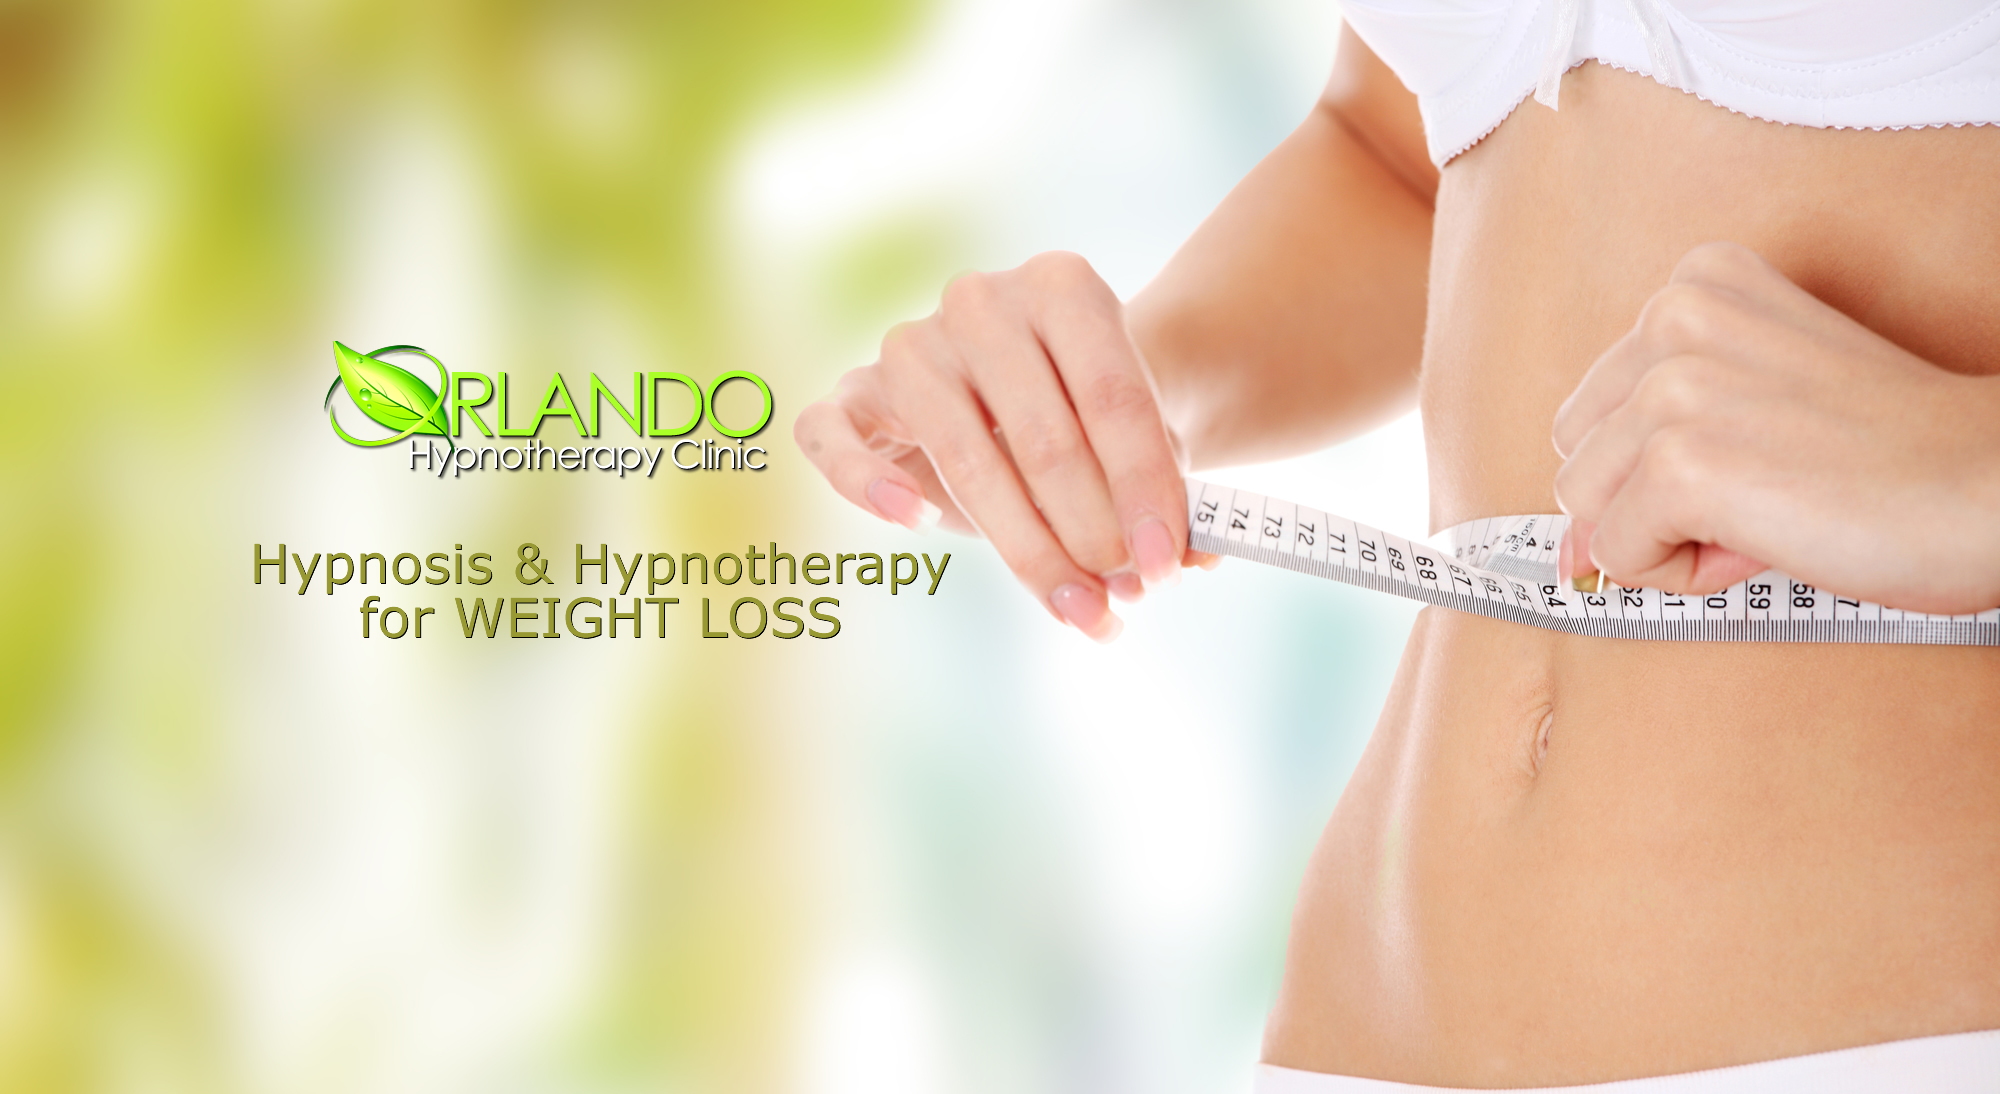 Hypnosis-The Secret to Permanent Weight Loss? Really?   Orlando